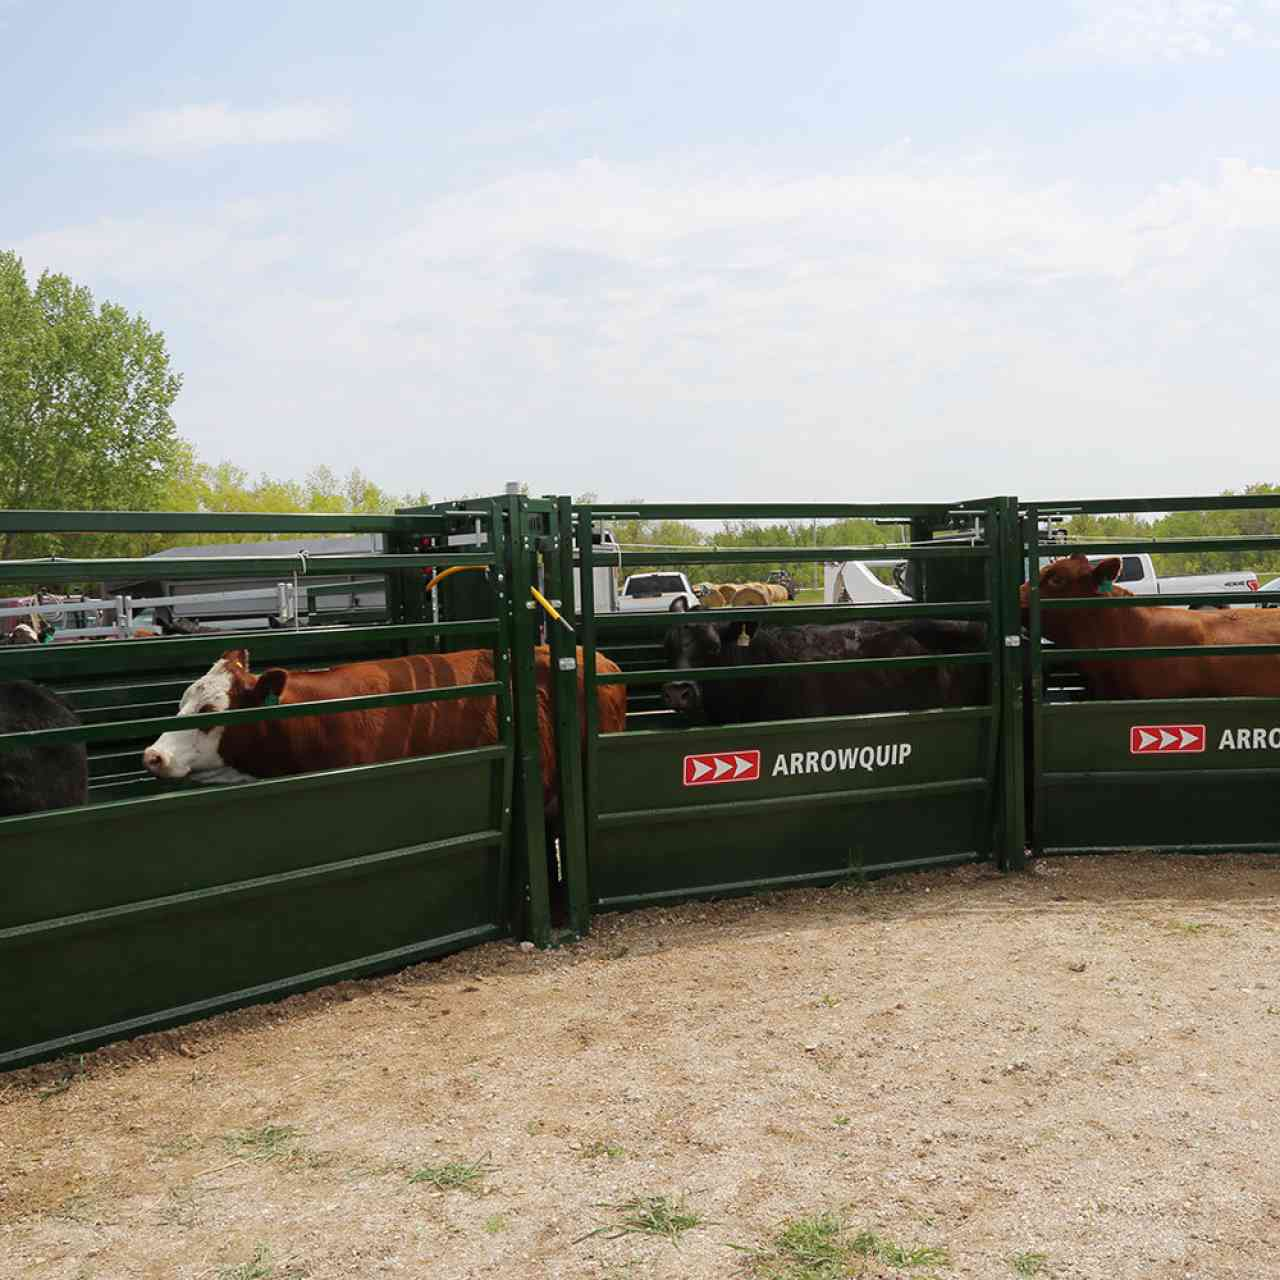 180 degree curved adjustable cattle alley with cattle walking through